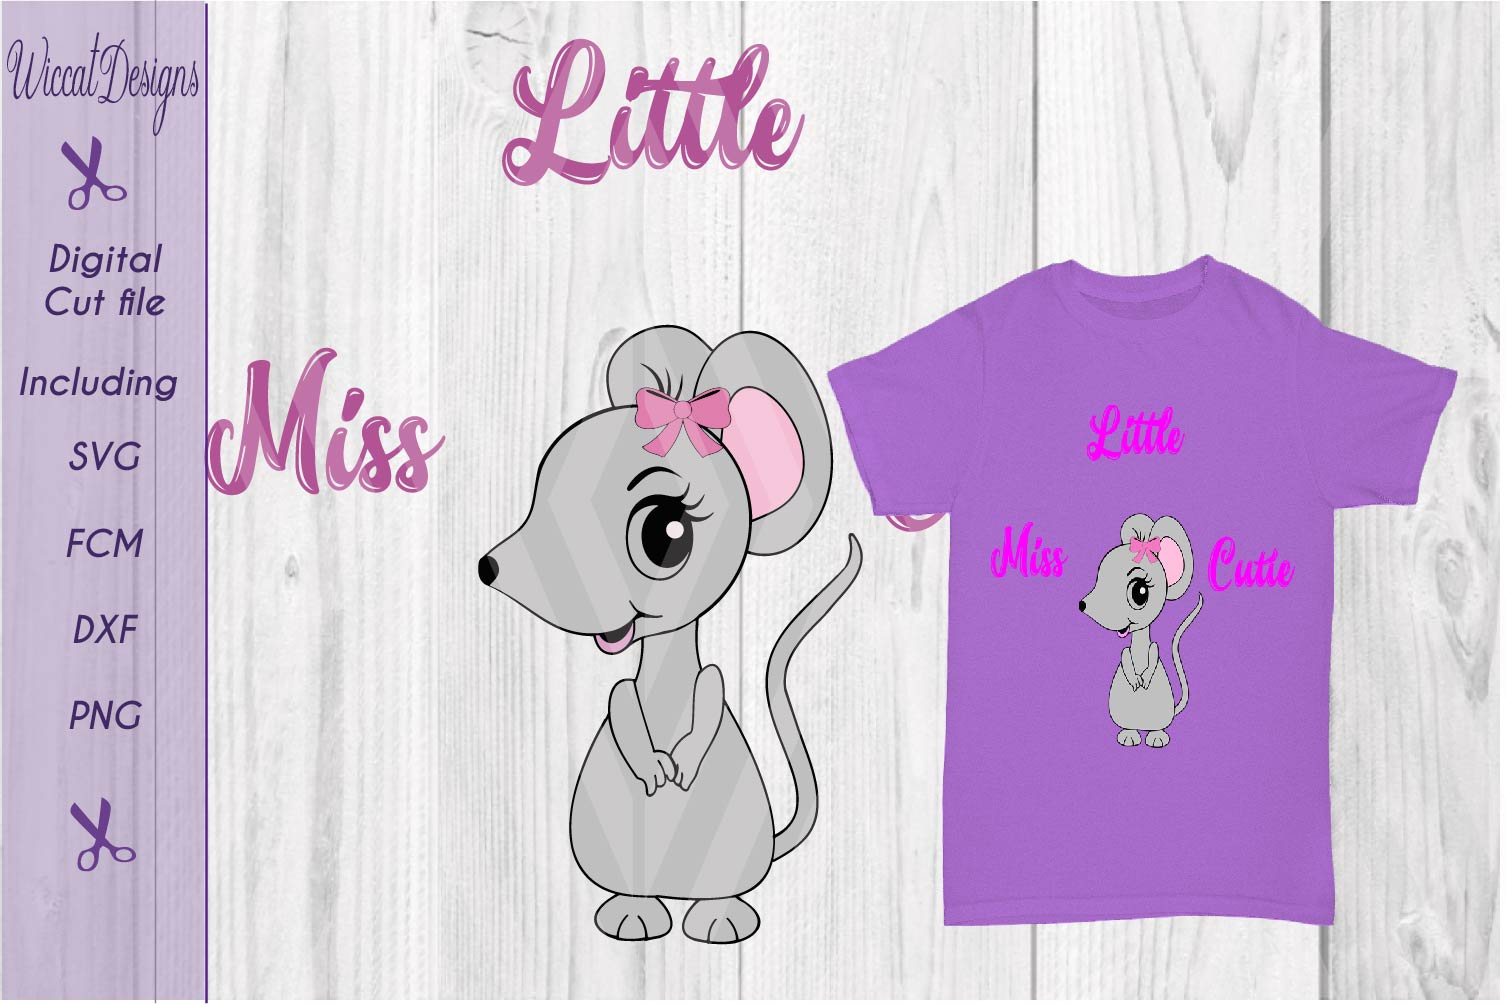 Mouse svg, Little miss cutie svg, quote svg, tshirt design svg example image 2